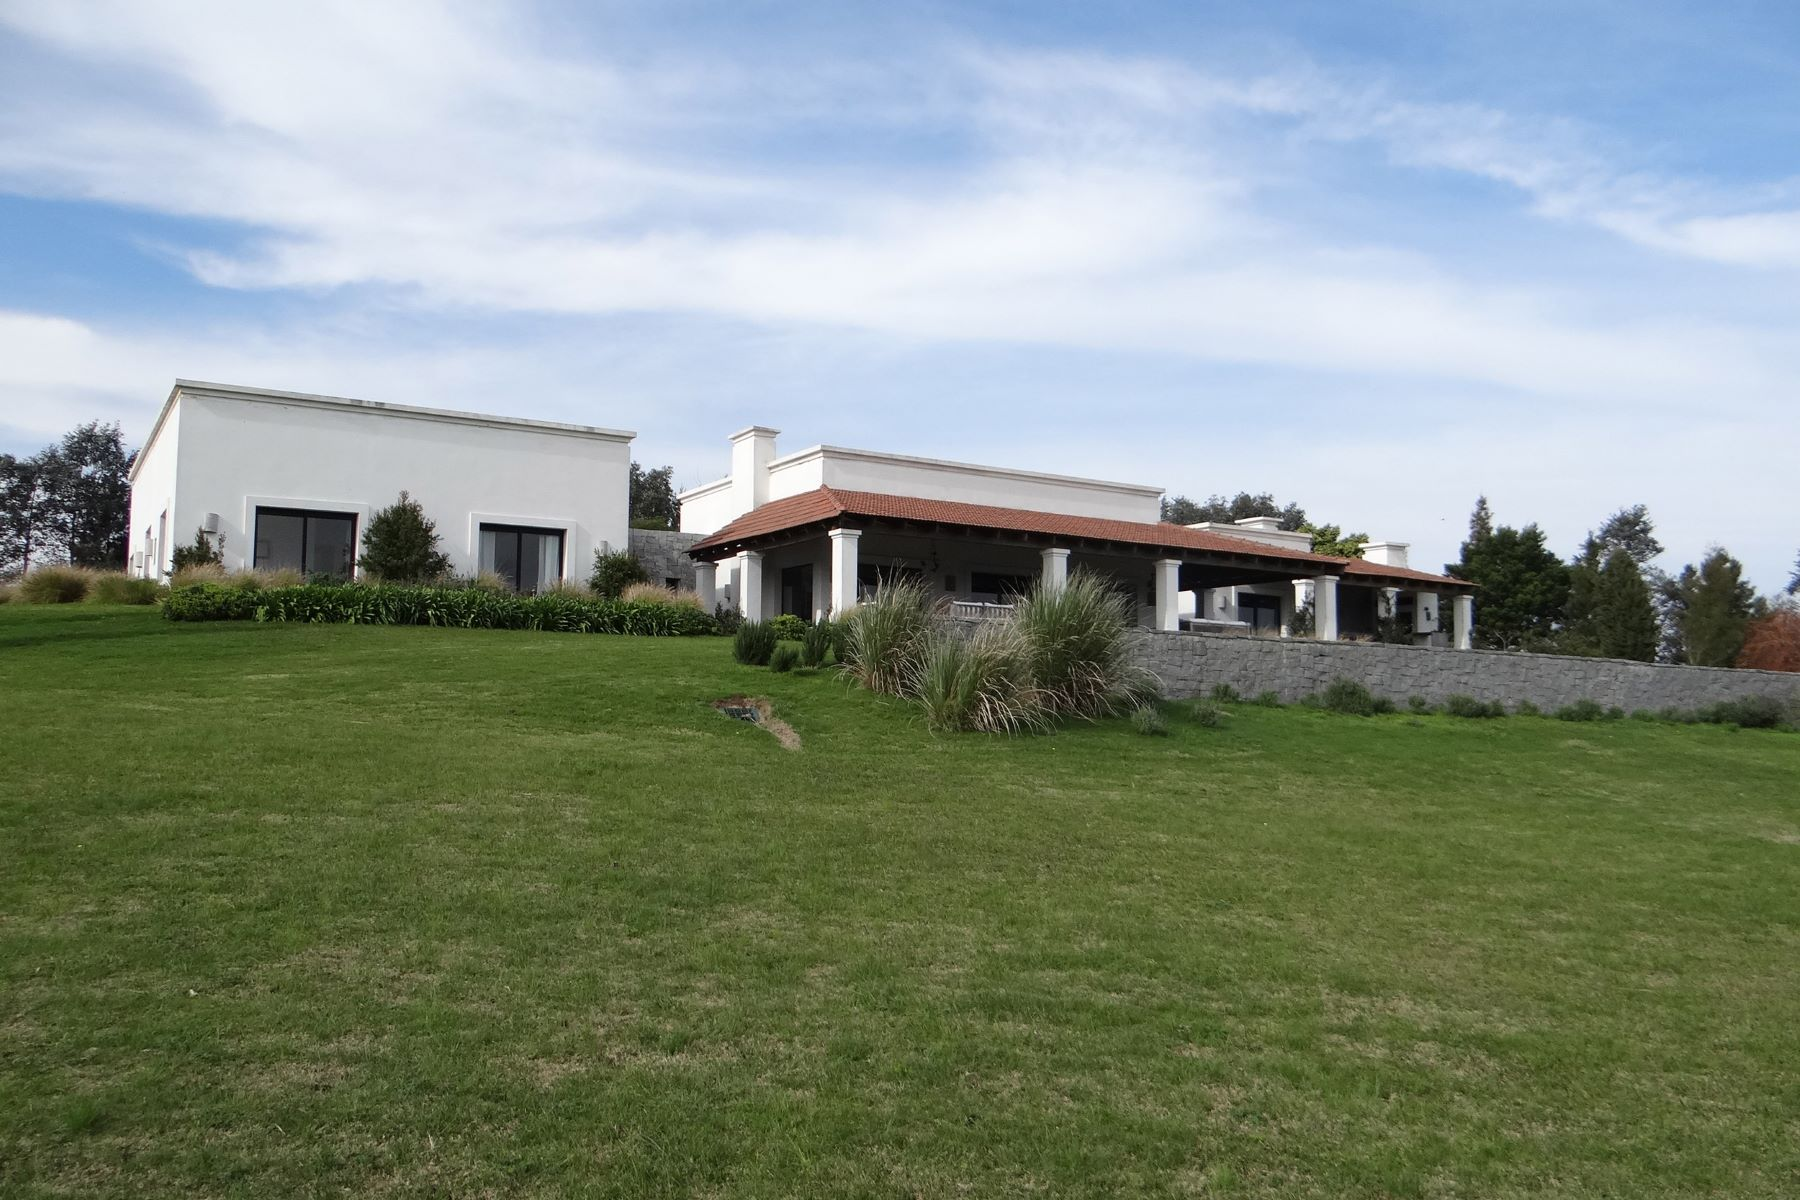 Single Family Home for Sale at Chacra Cruz del Sur Maldonado, Maldonado, Uruguay